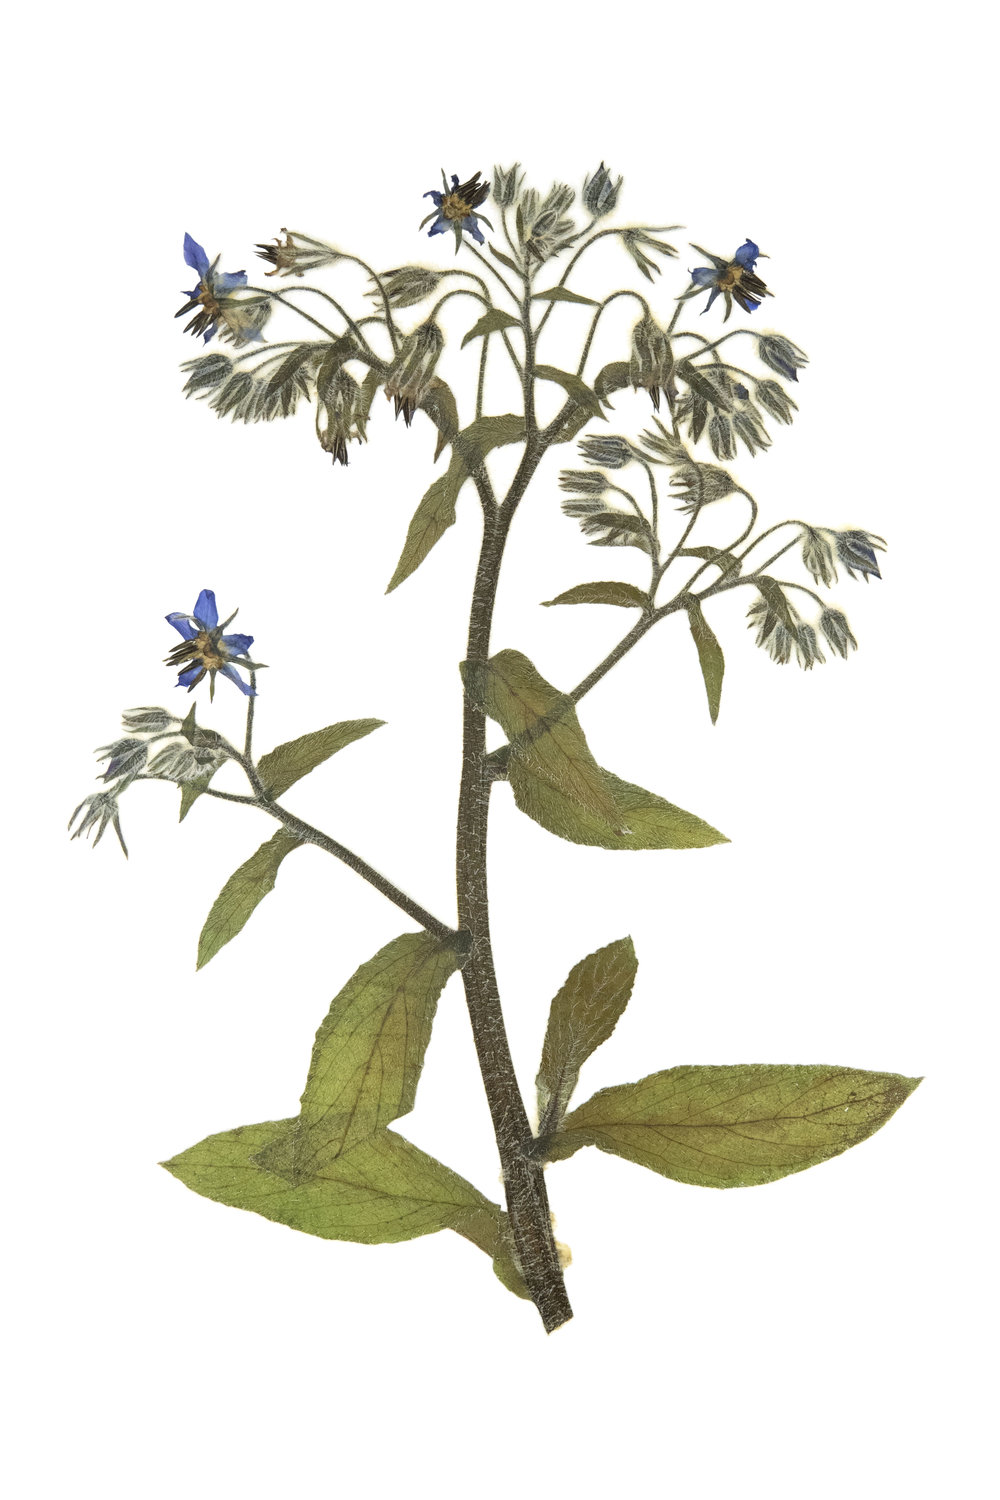 New! Borage / Borago officinalis